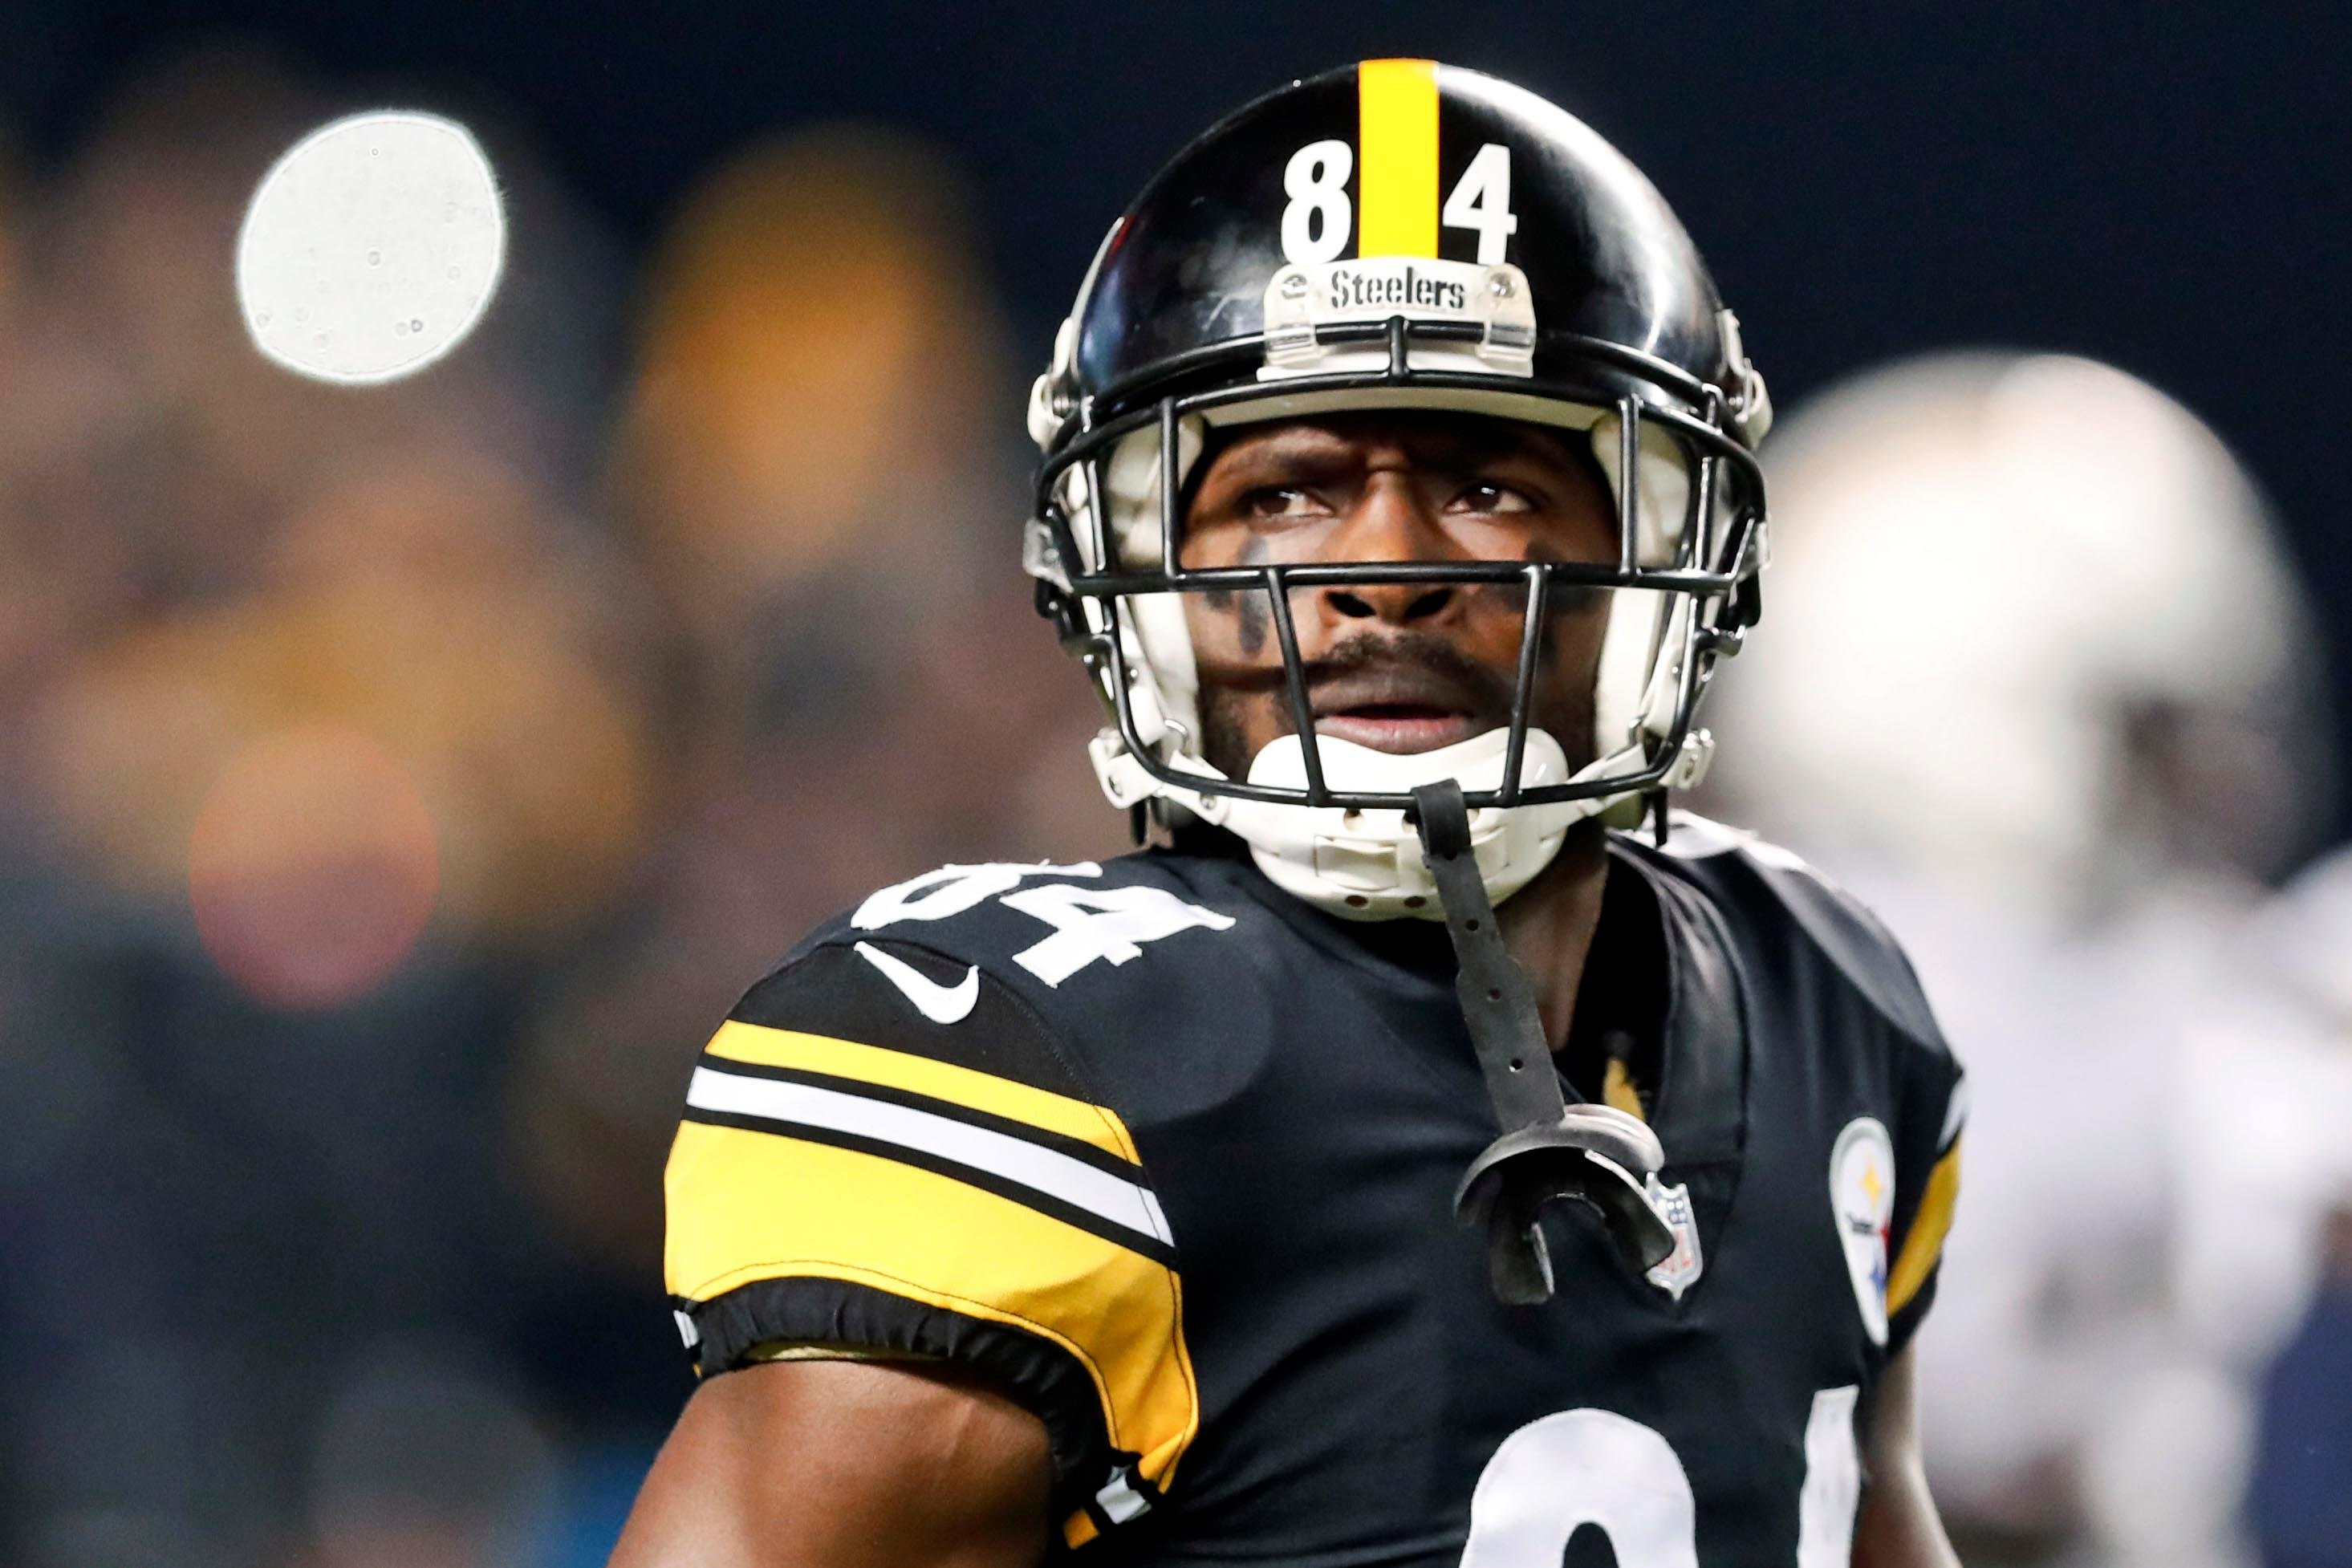 Antonio Brown won, and the Steelers are screwed